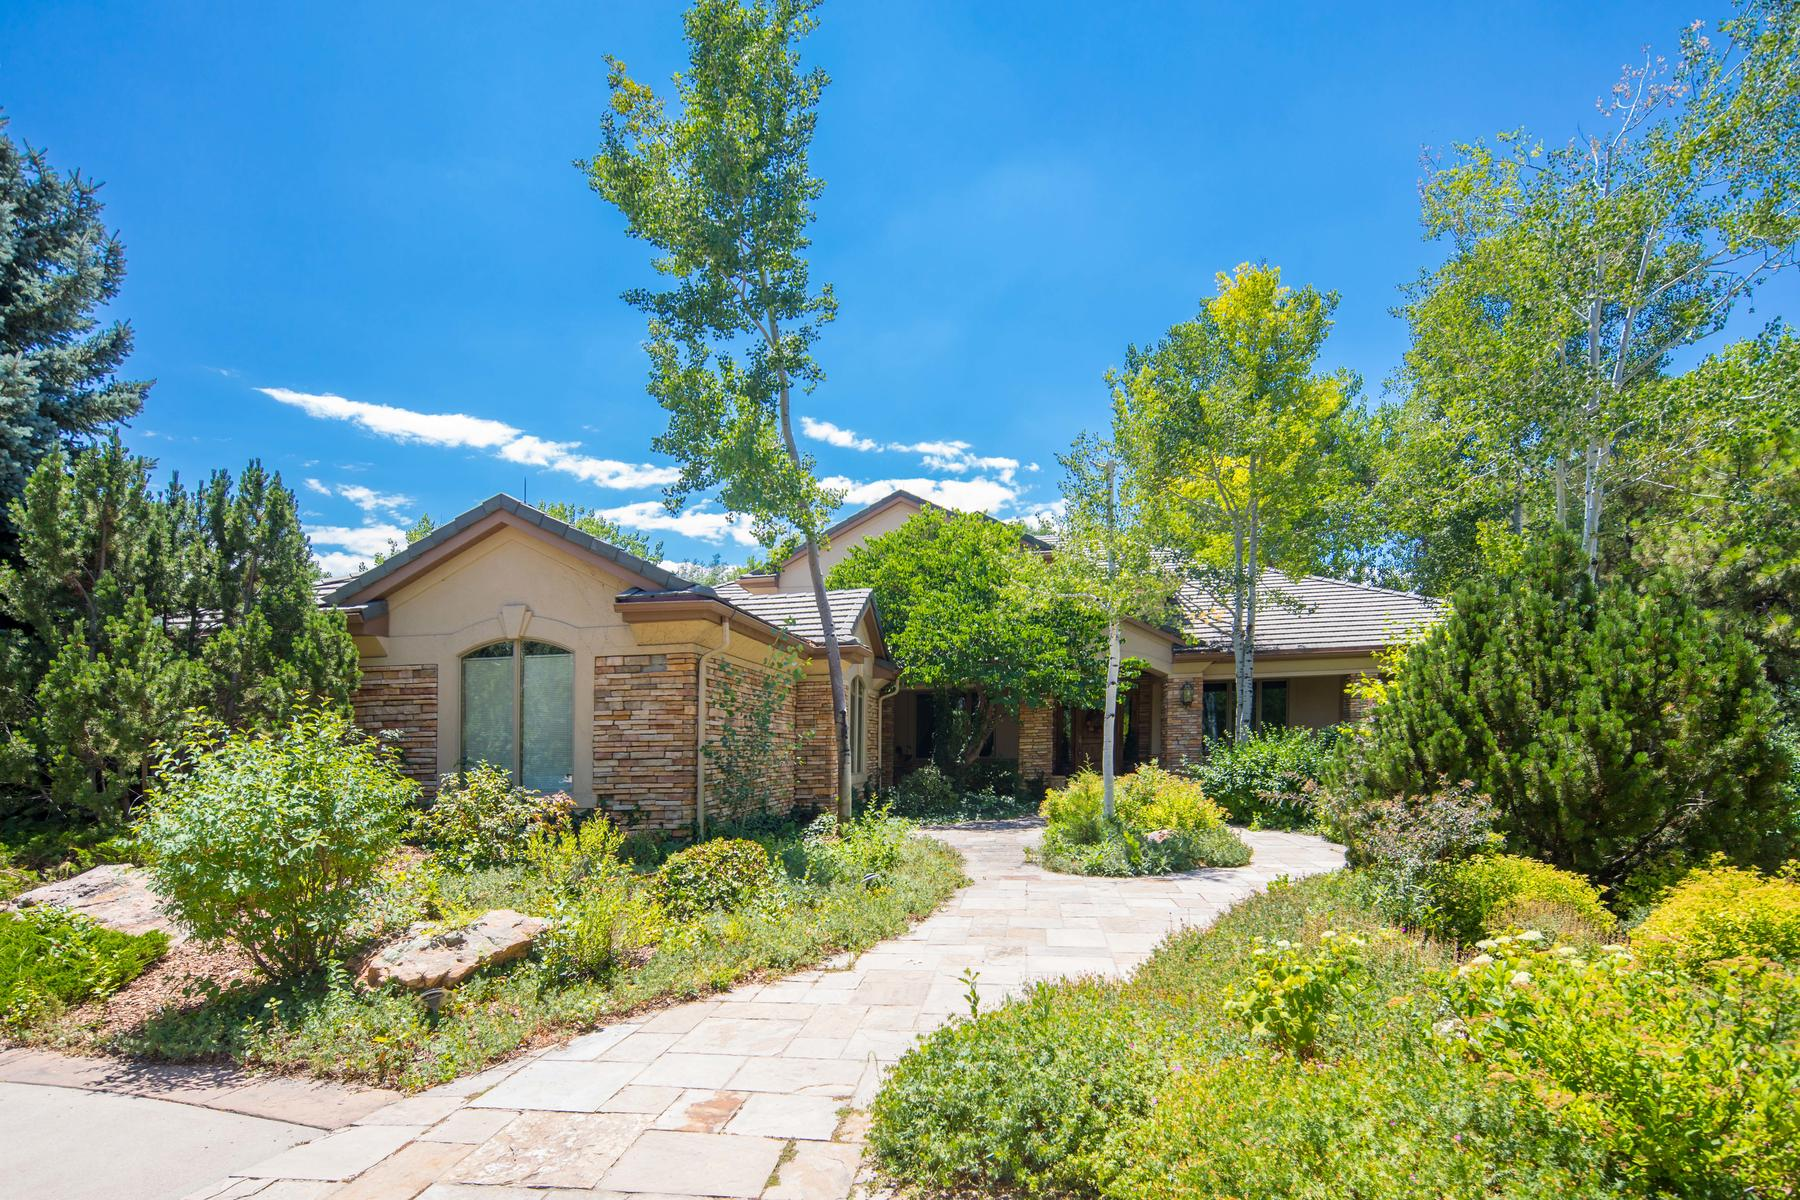 Single Family Home for Active at Welcome to this lovely family home on over half a peaceful acre in The Preserve. 4390 E Perry Pkwy Greenwood Village, Colorado 80121 United States